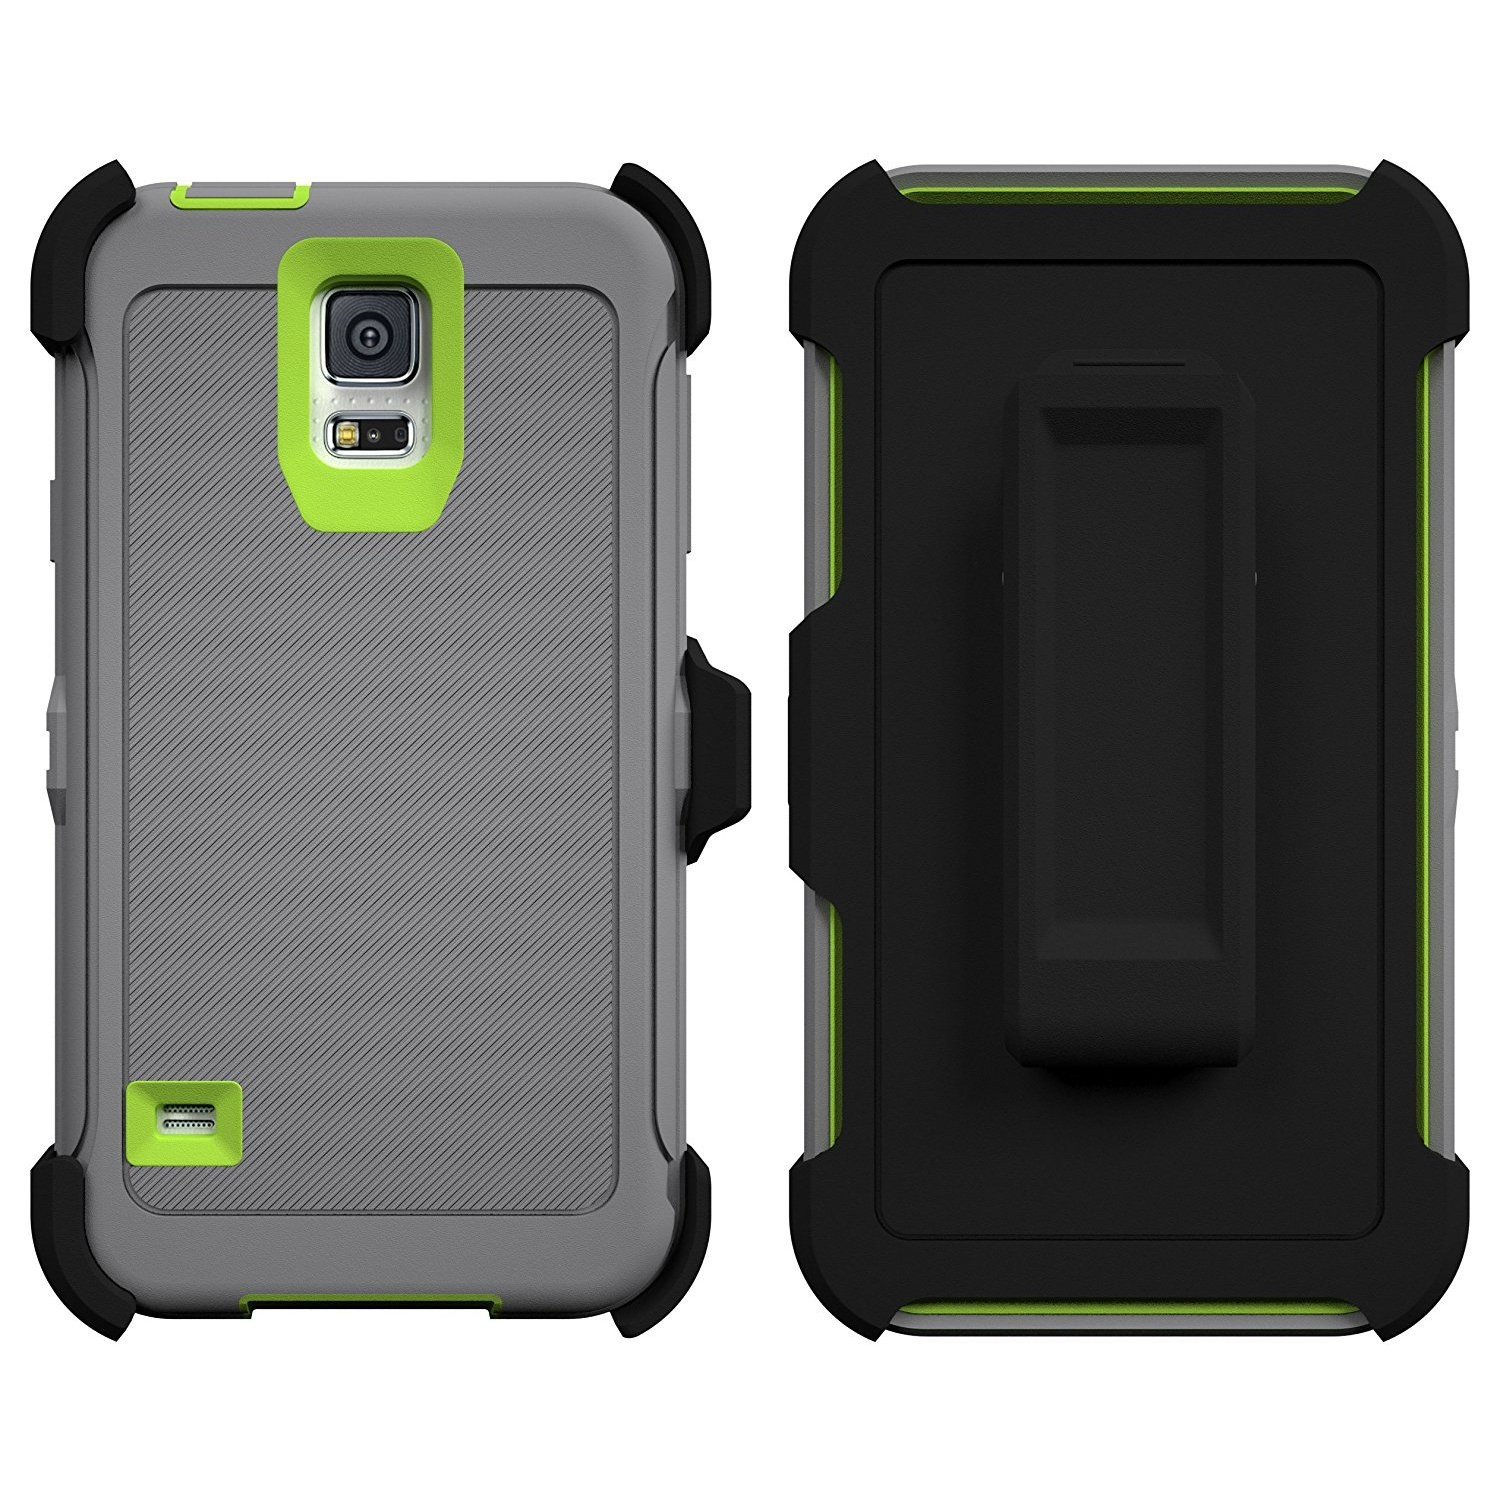 new arrival b12ab 8e91a Samsung Galaxy S5 Armor Series Shock Proof Case with Built in Screen  Protector - Holster & Belt Clip